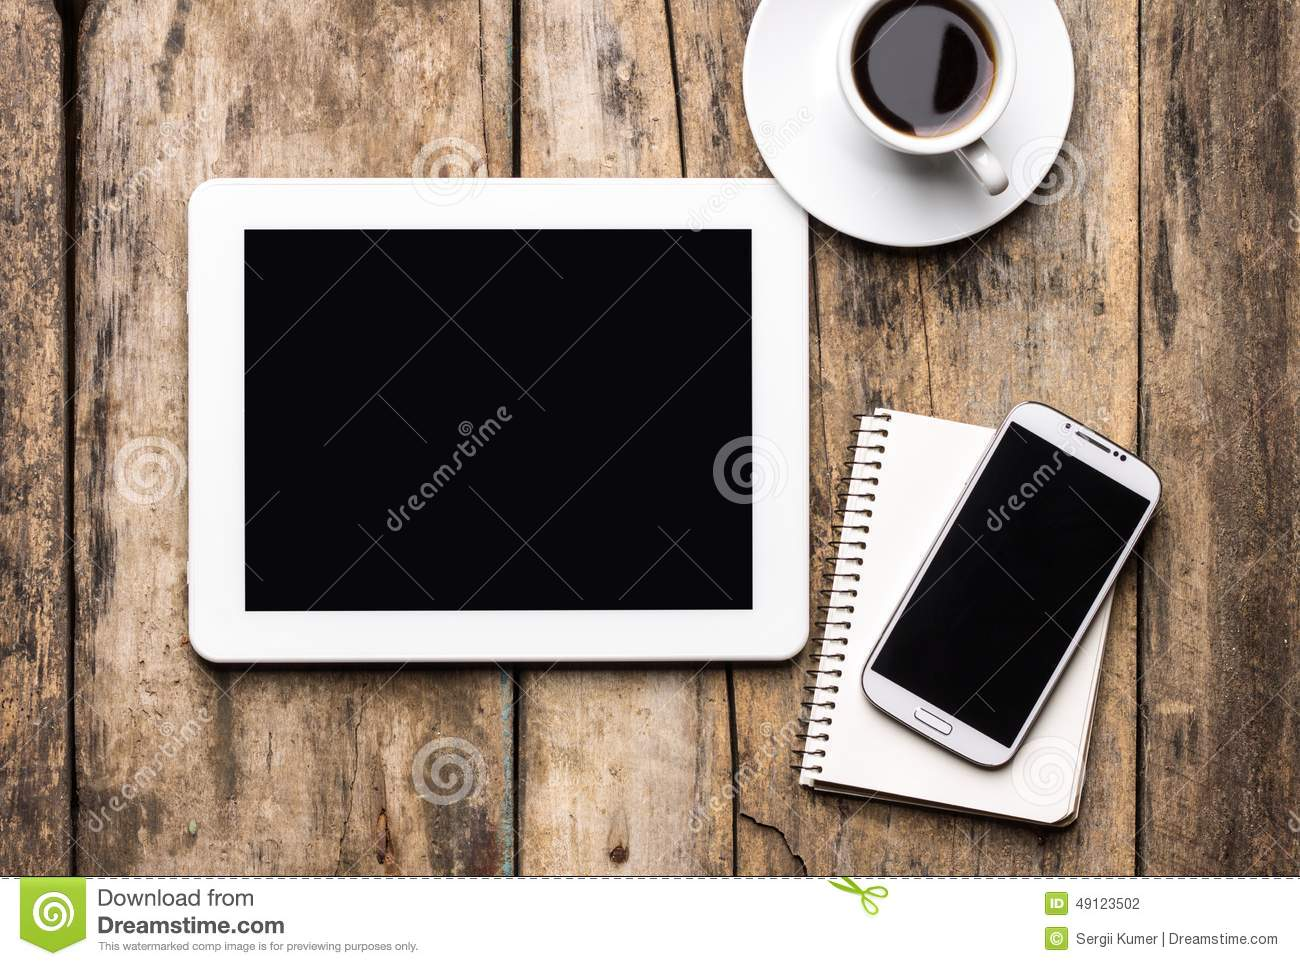 Mobile workplace with tablet PC, phone and cup of coffee